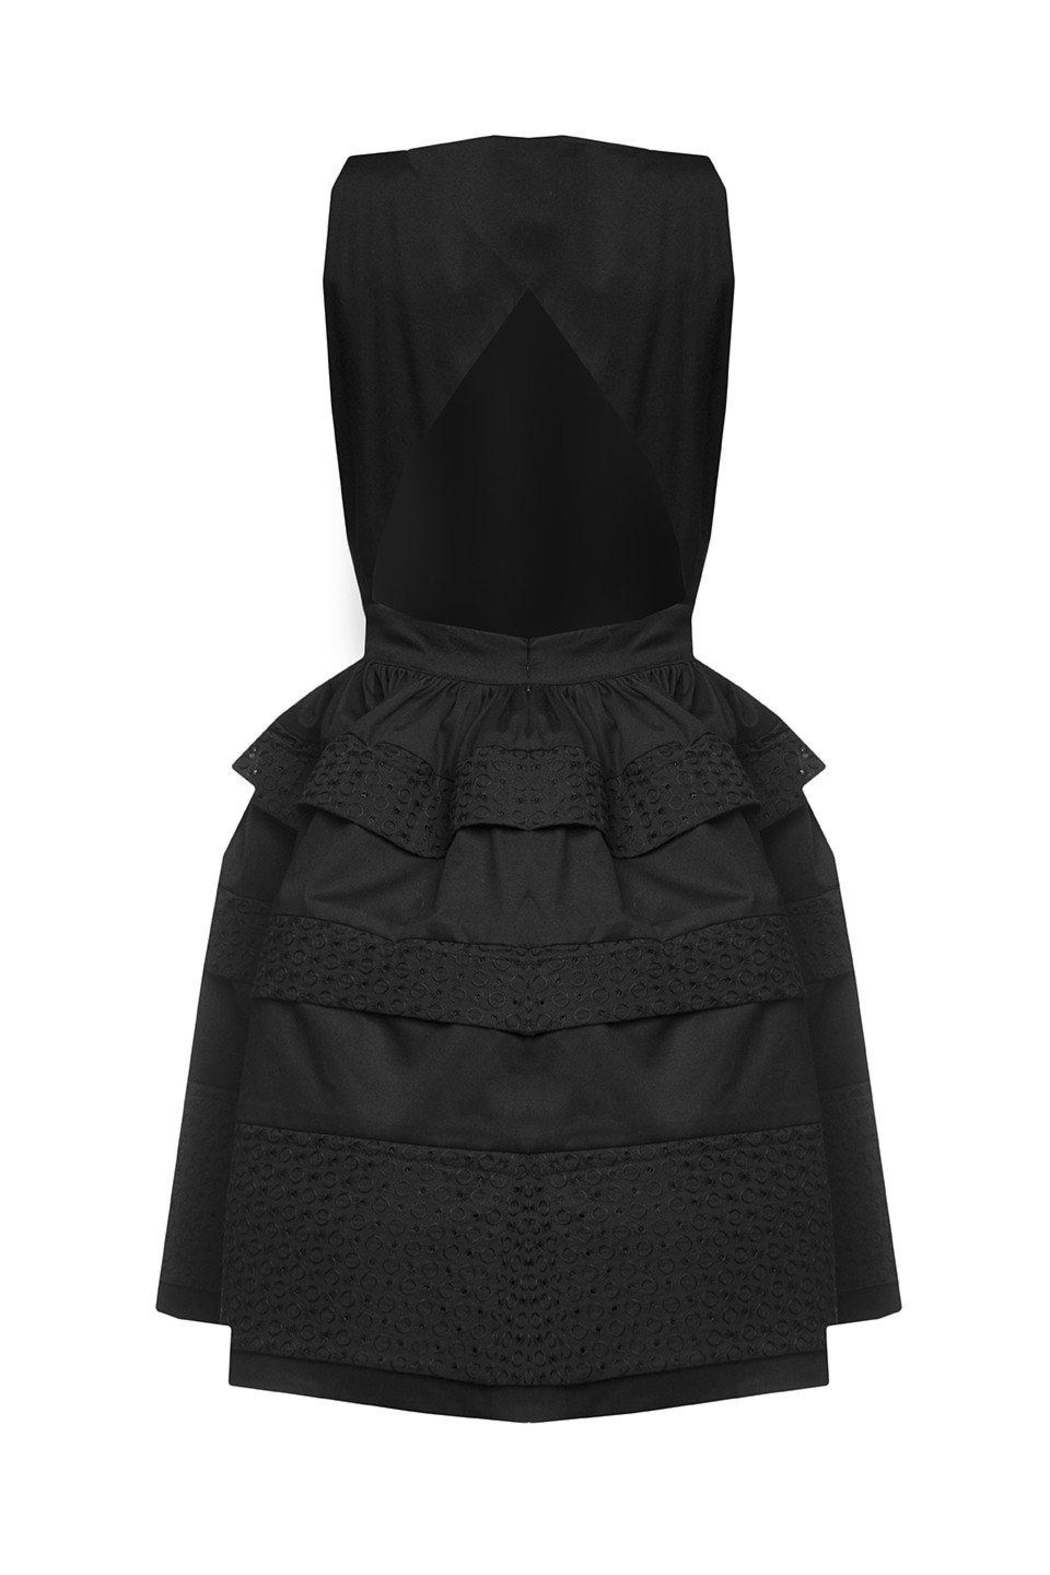 Greta Constantine Backless Bubble Dress - Side Cropped Image